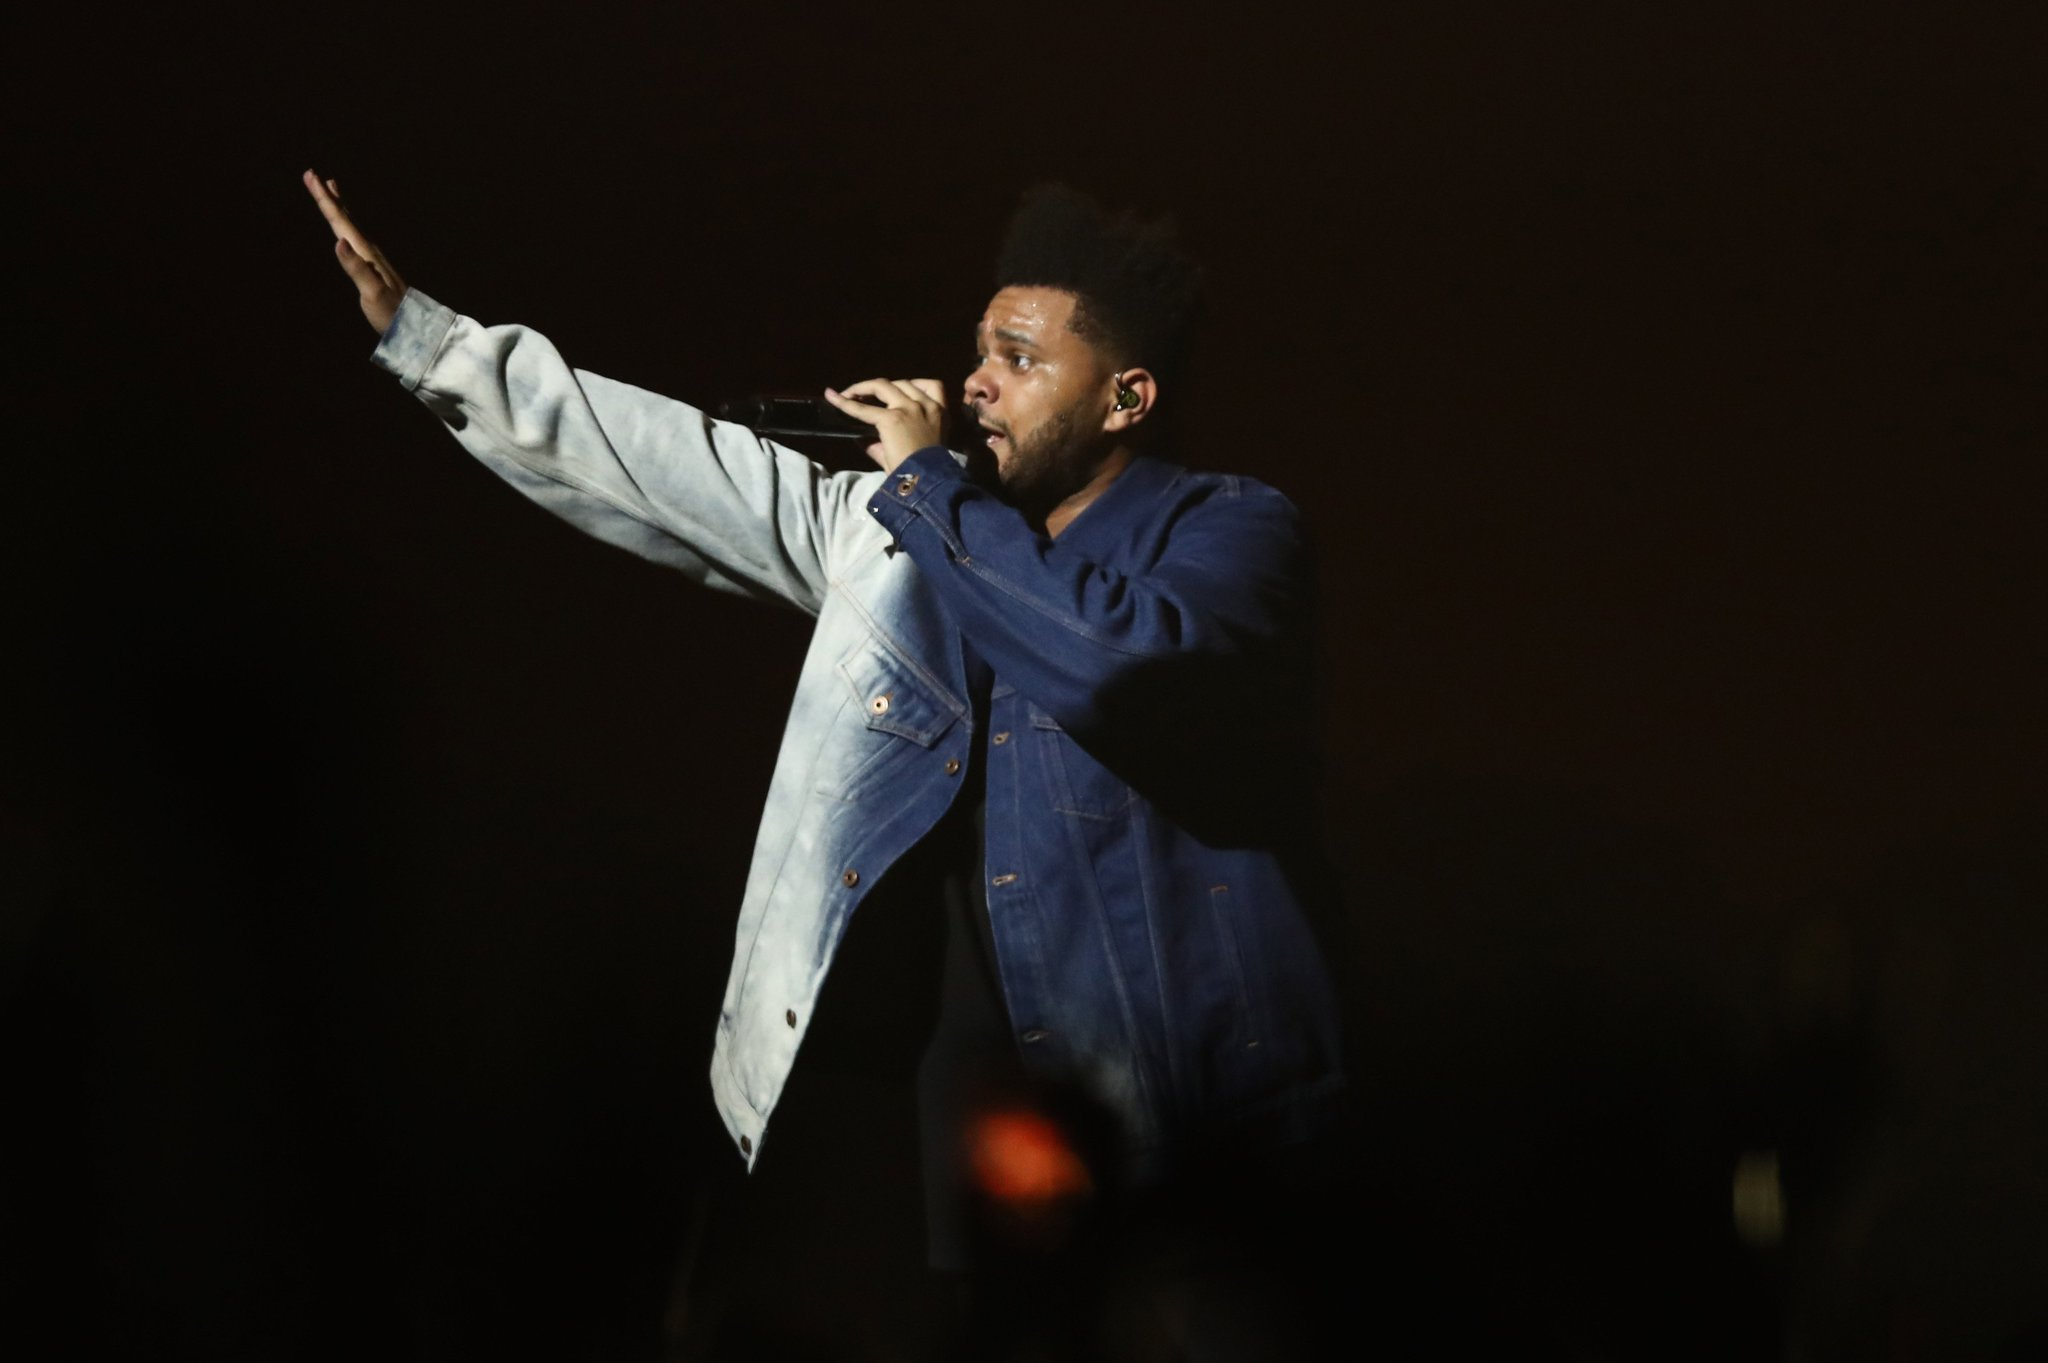 The Weeknd cuts ties with H&M over offensive photo https://t.co/jN3sVTVee3 https://t.co/myKboE0iyg